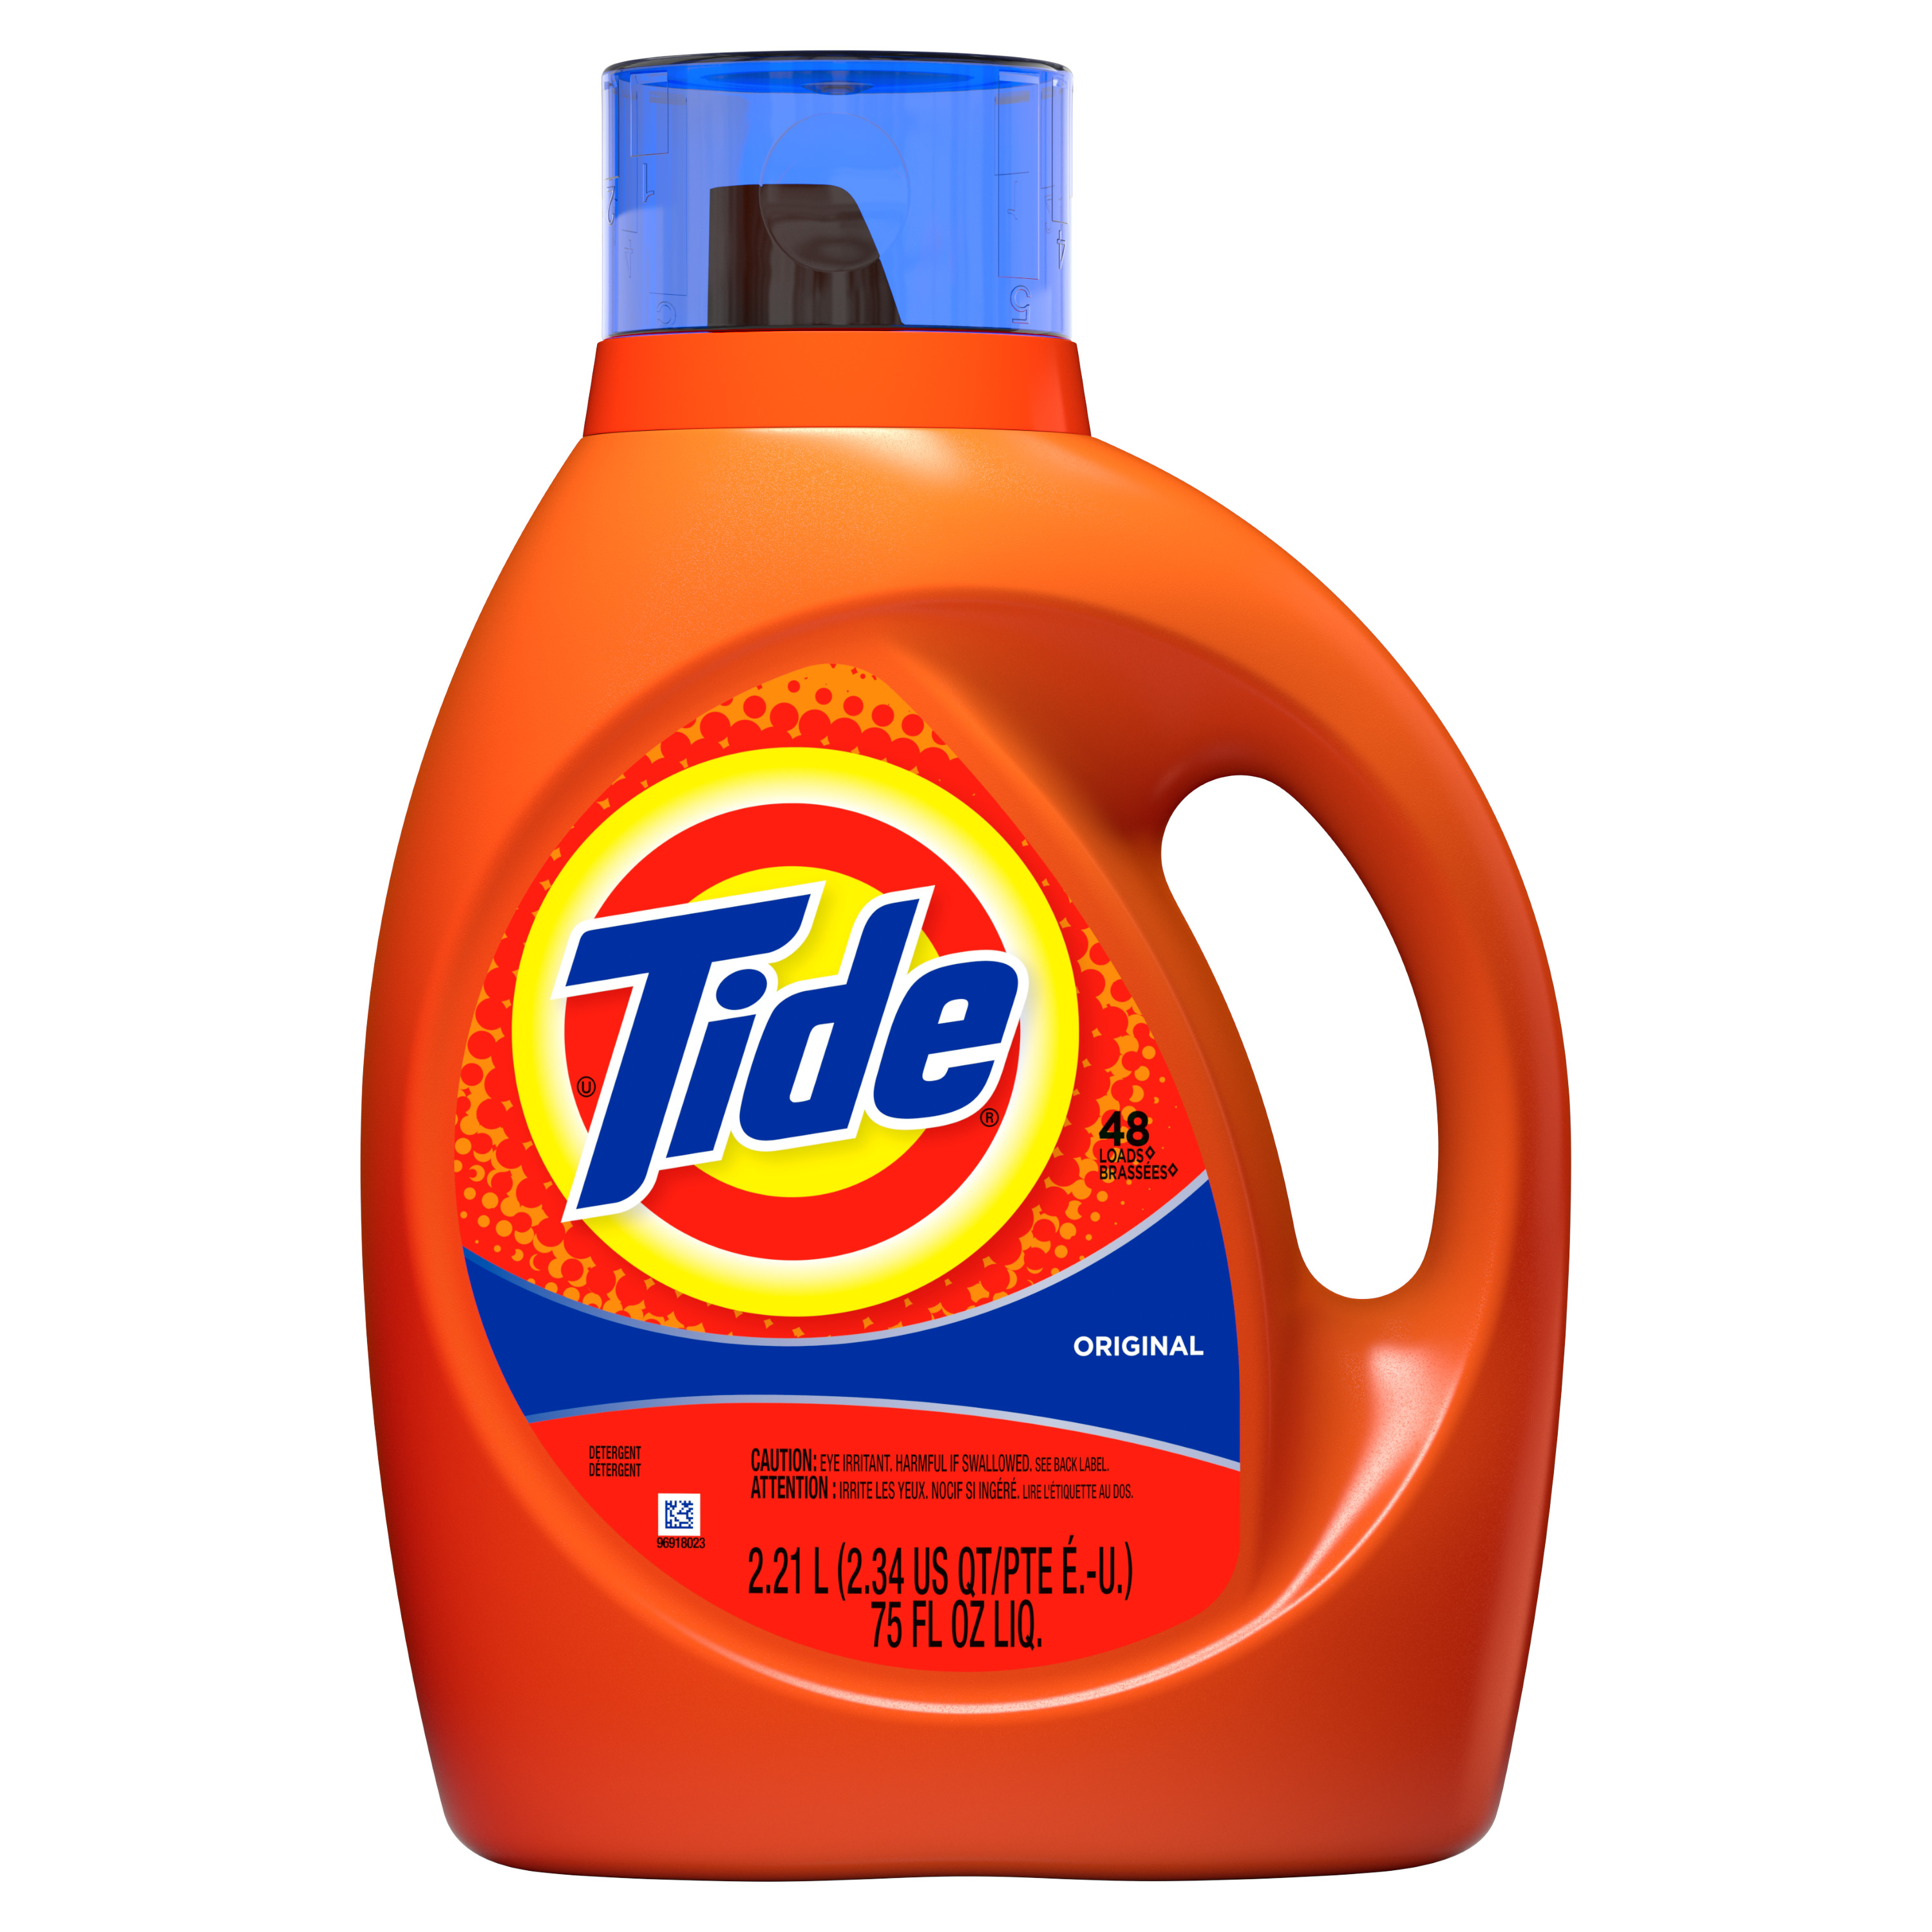 Tide Liquid Laundry Detergent, Original, 48 Loads, 2.21 L